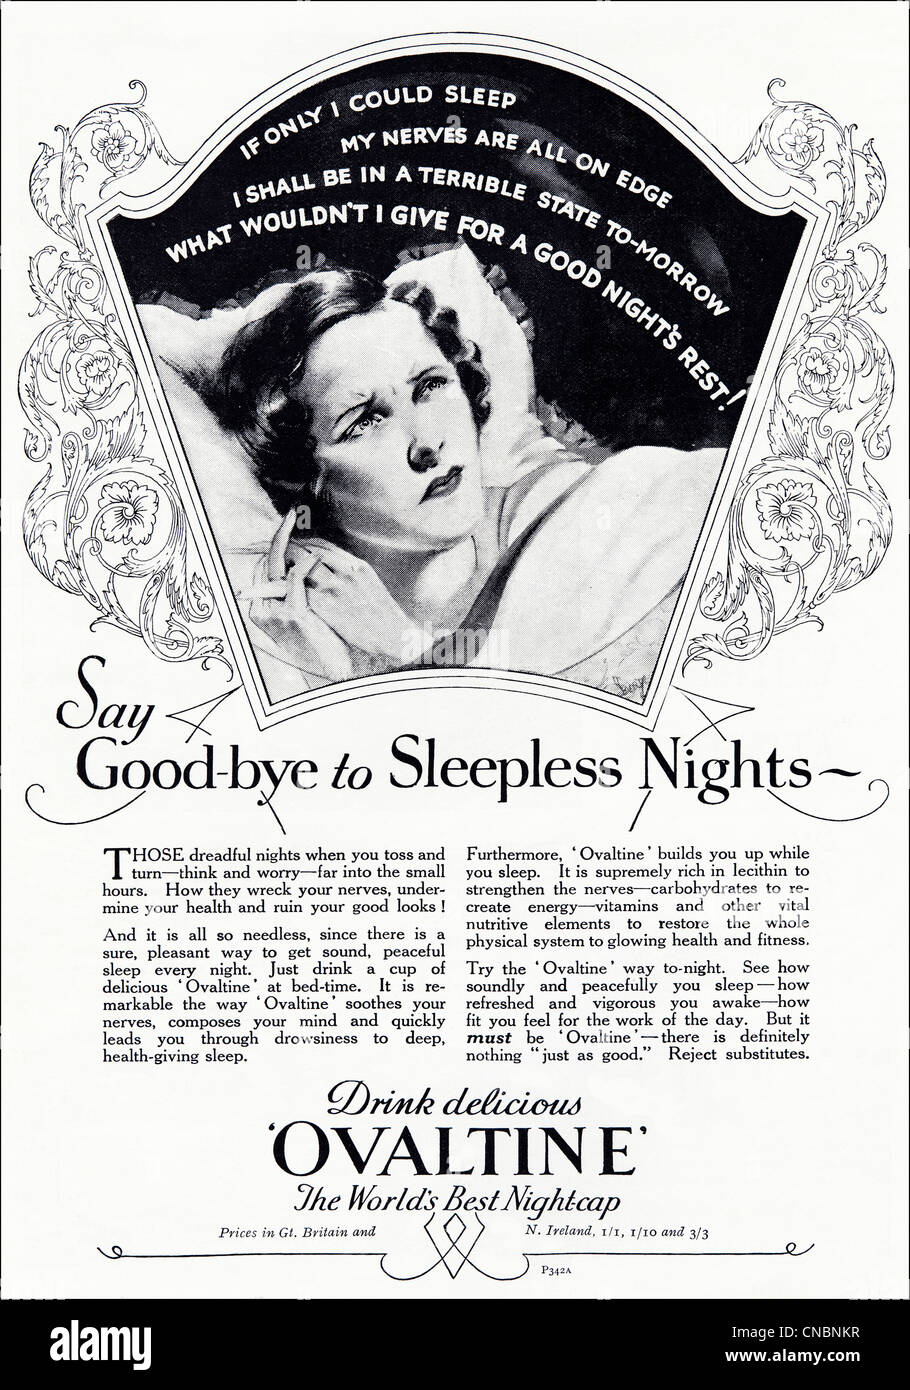 Original double page 1930s consumer magazine advertisement advertising OVALTINE night time drink - Stock Image